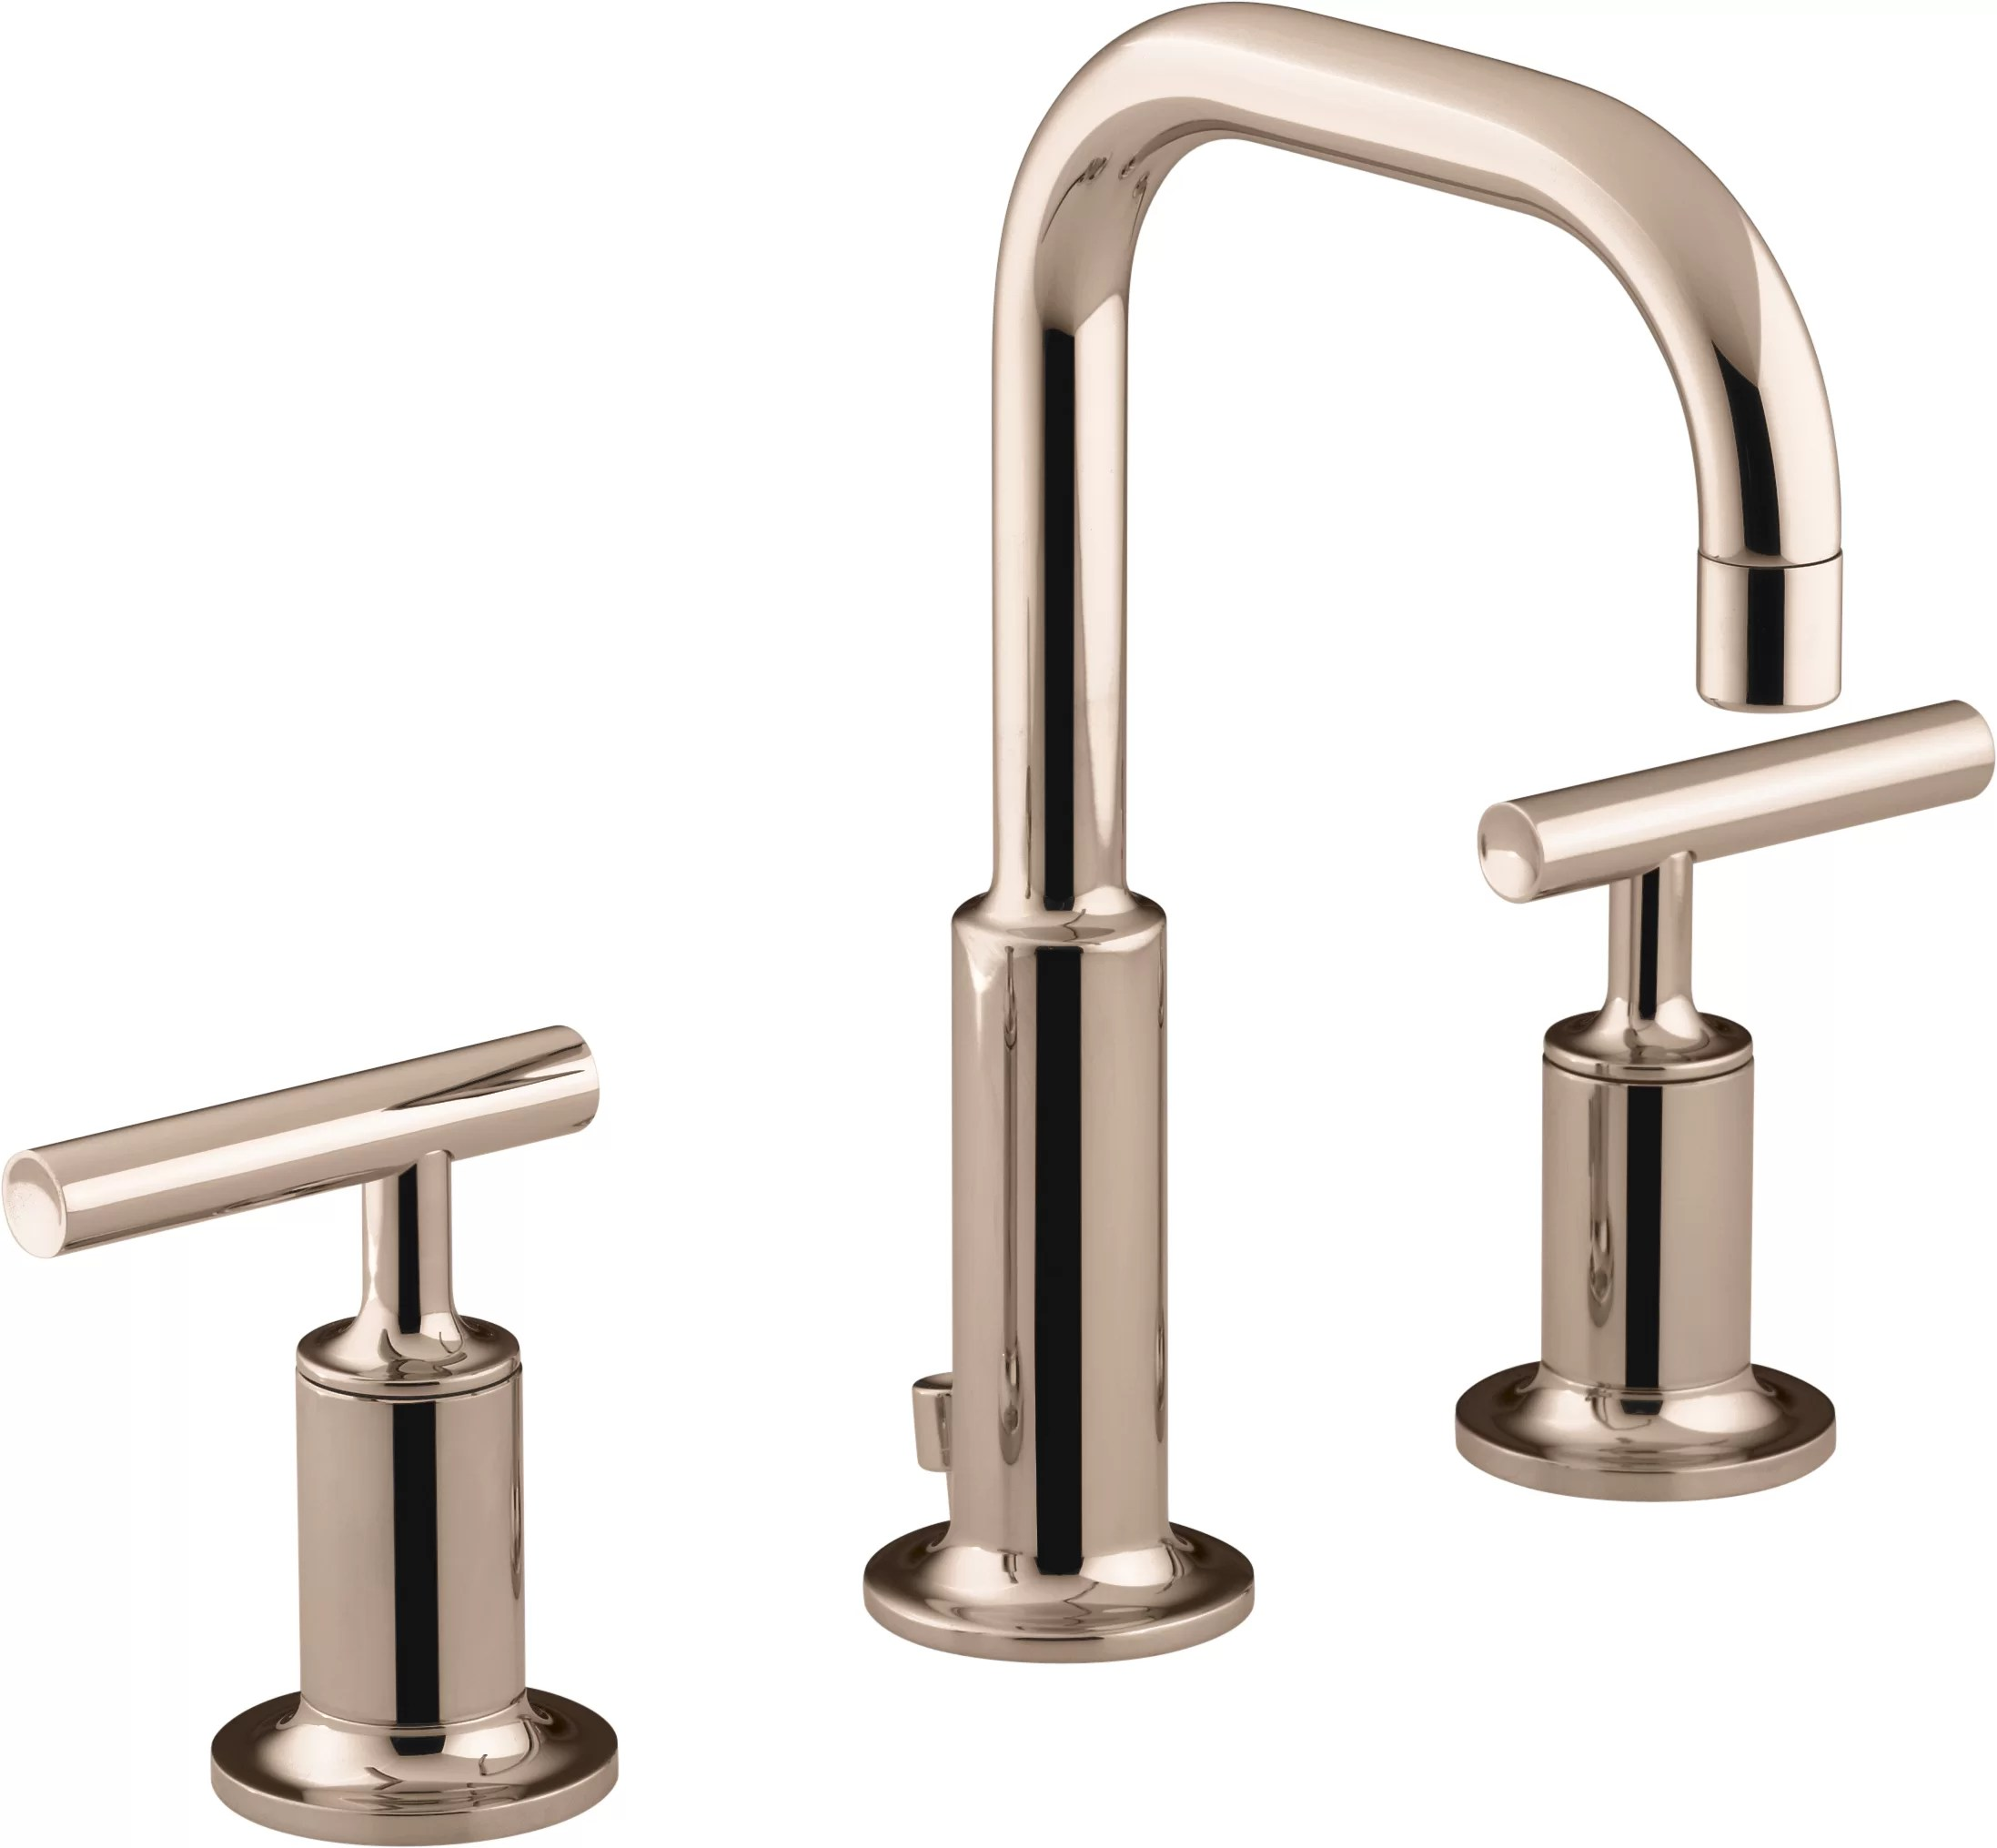 kohler purist widespread bathroom sink faucet with low lever handles and low gooseneck spout